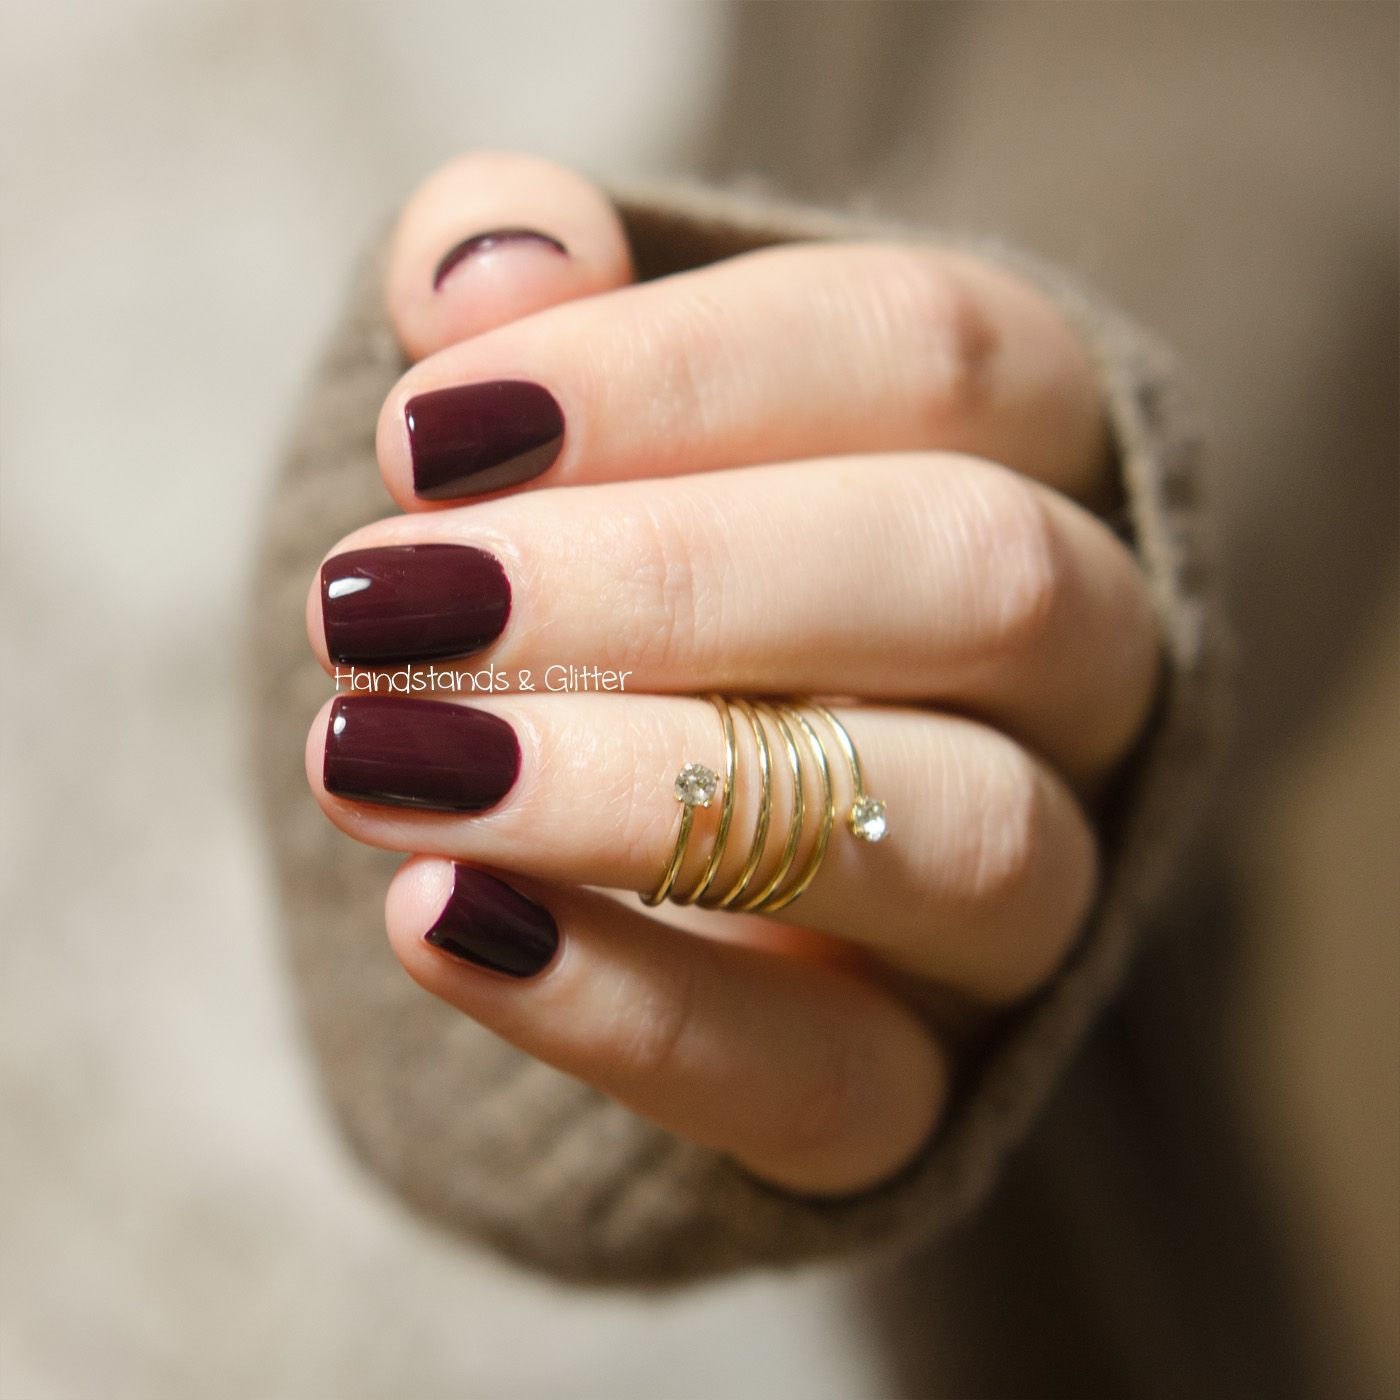 Essie - Sole Mate | NAILS | Pinterest | Essie sole mate, Sole and Makeup